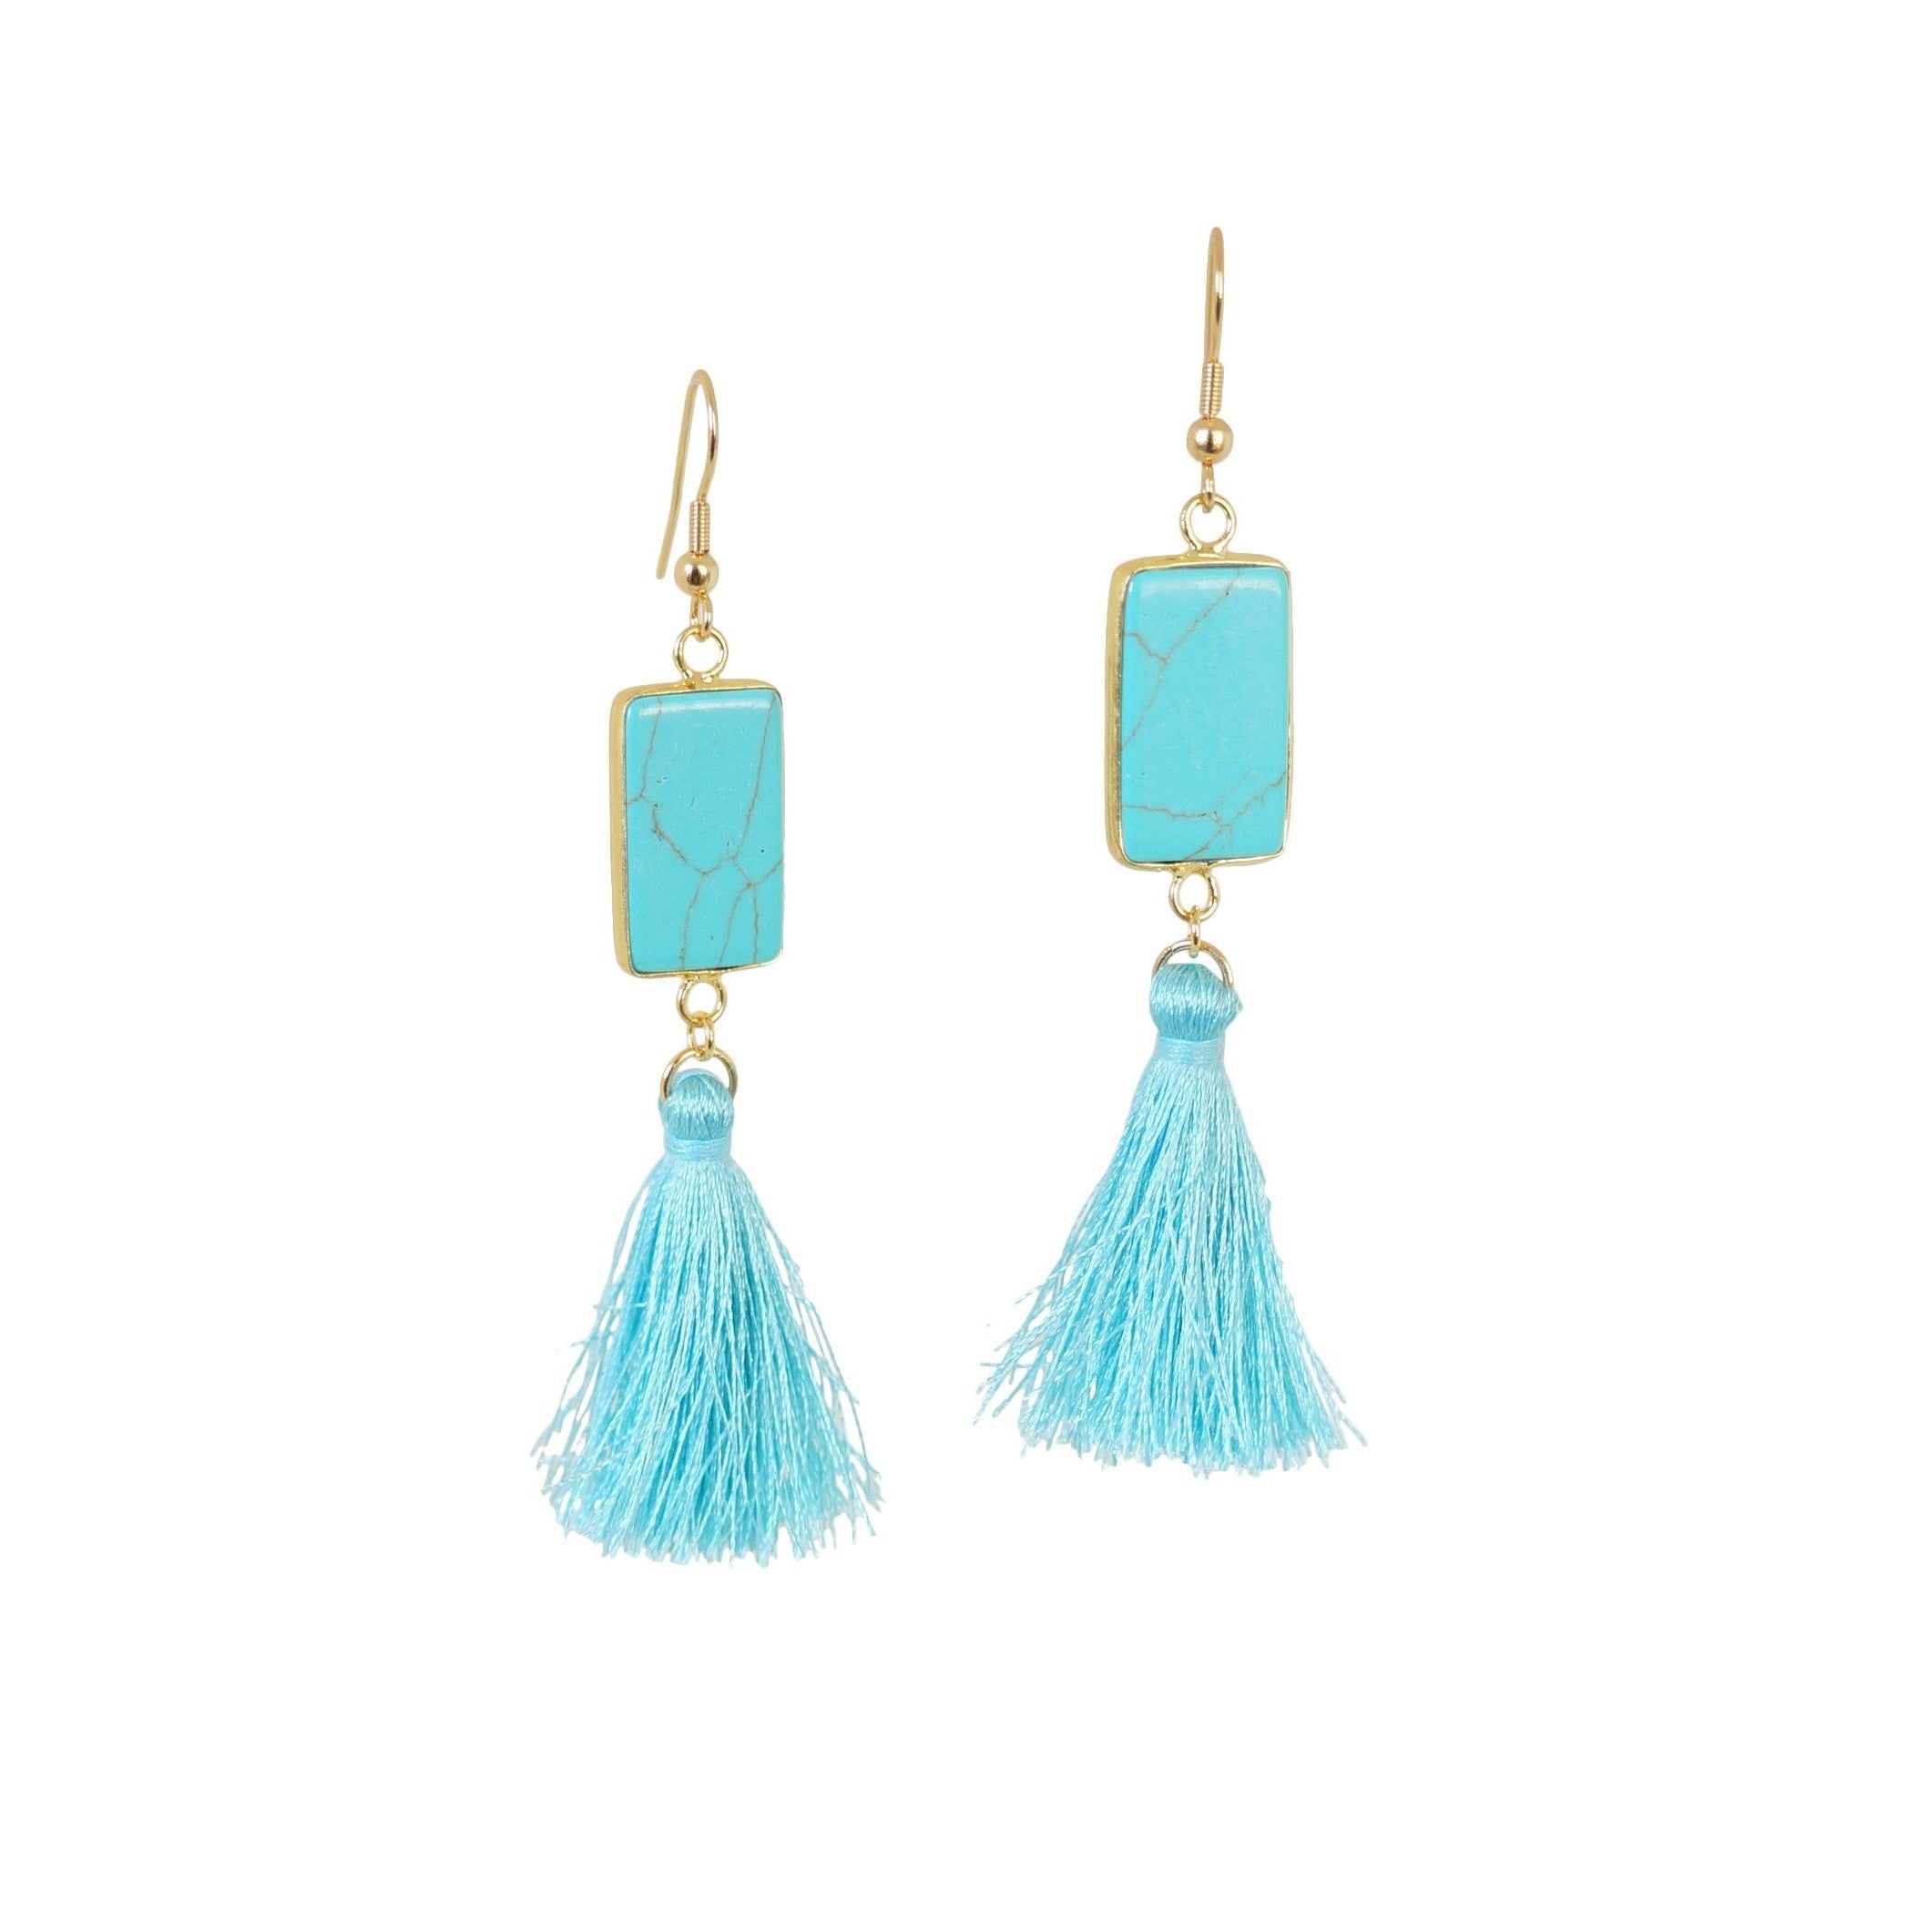 Connected Earrings